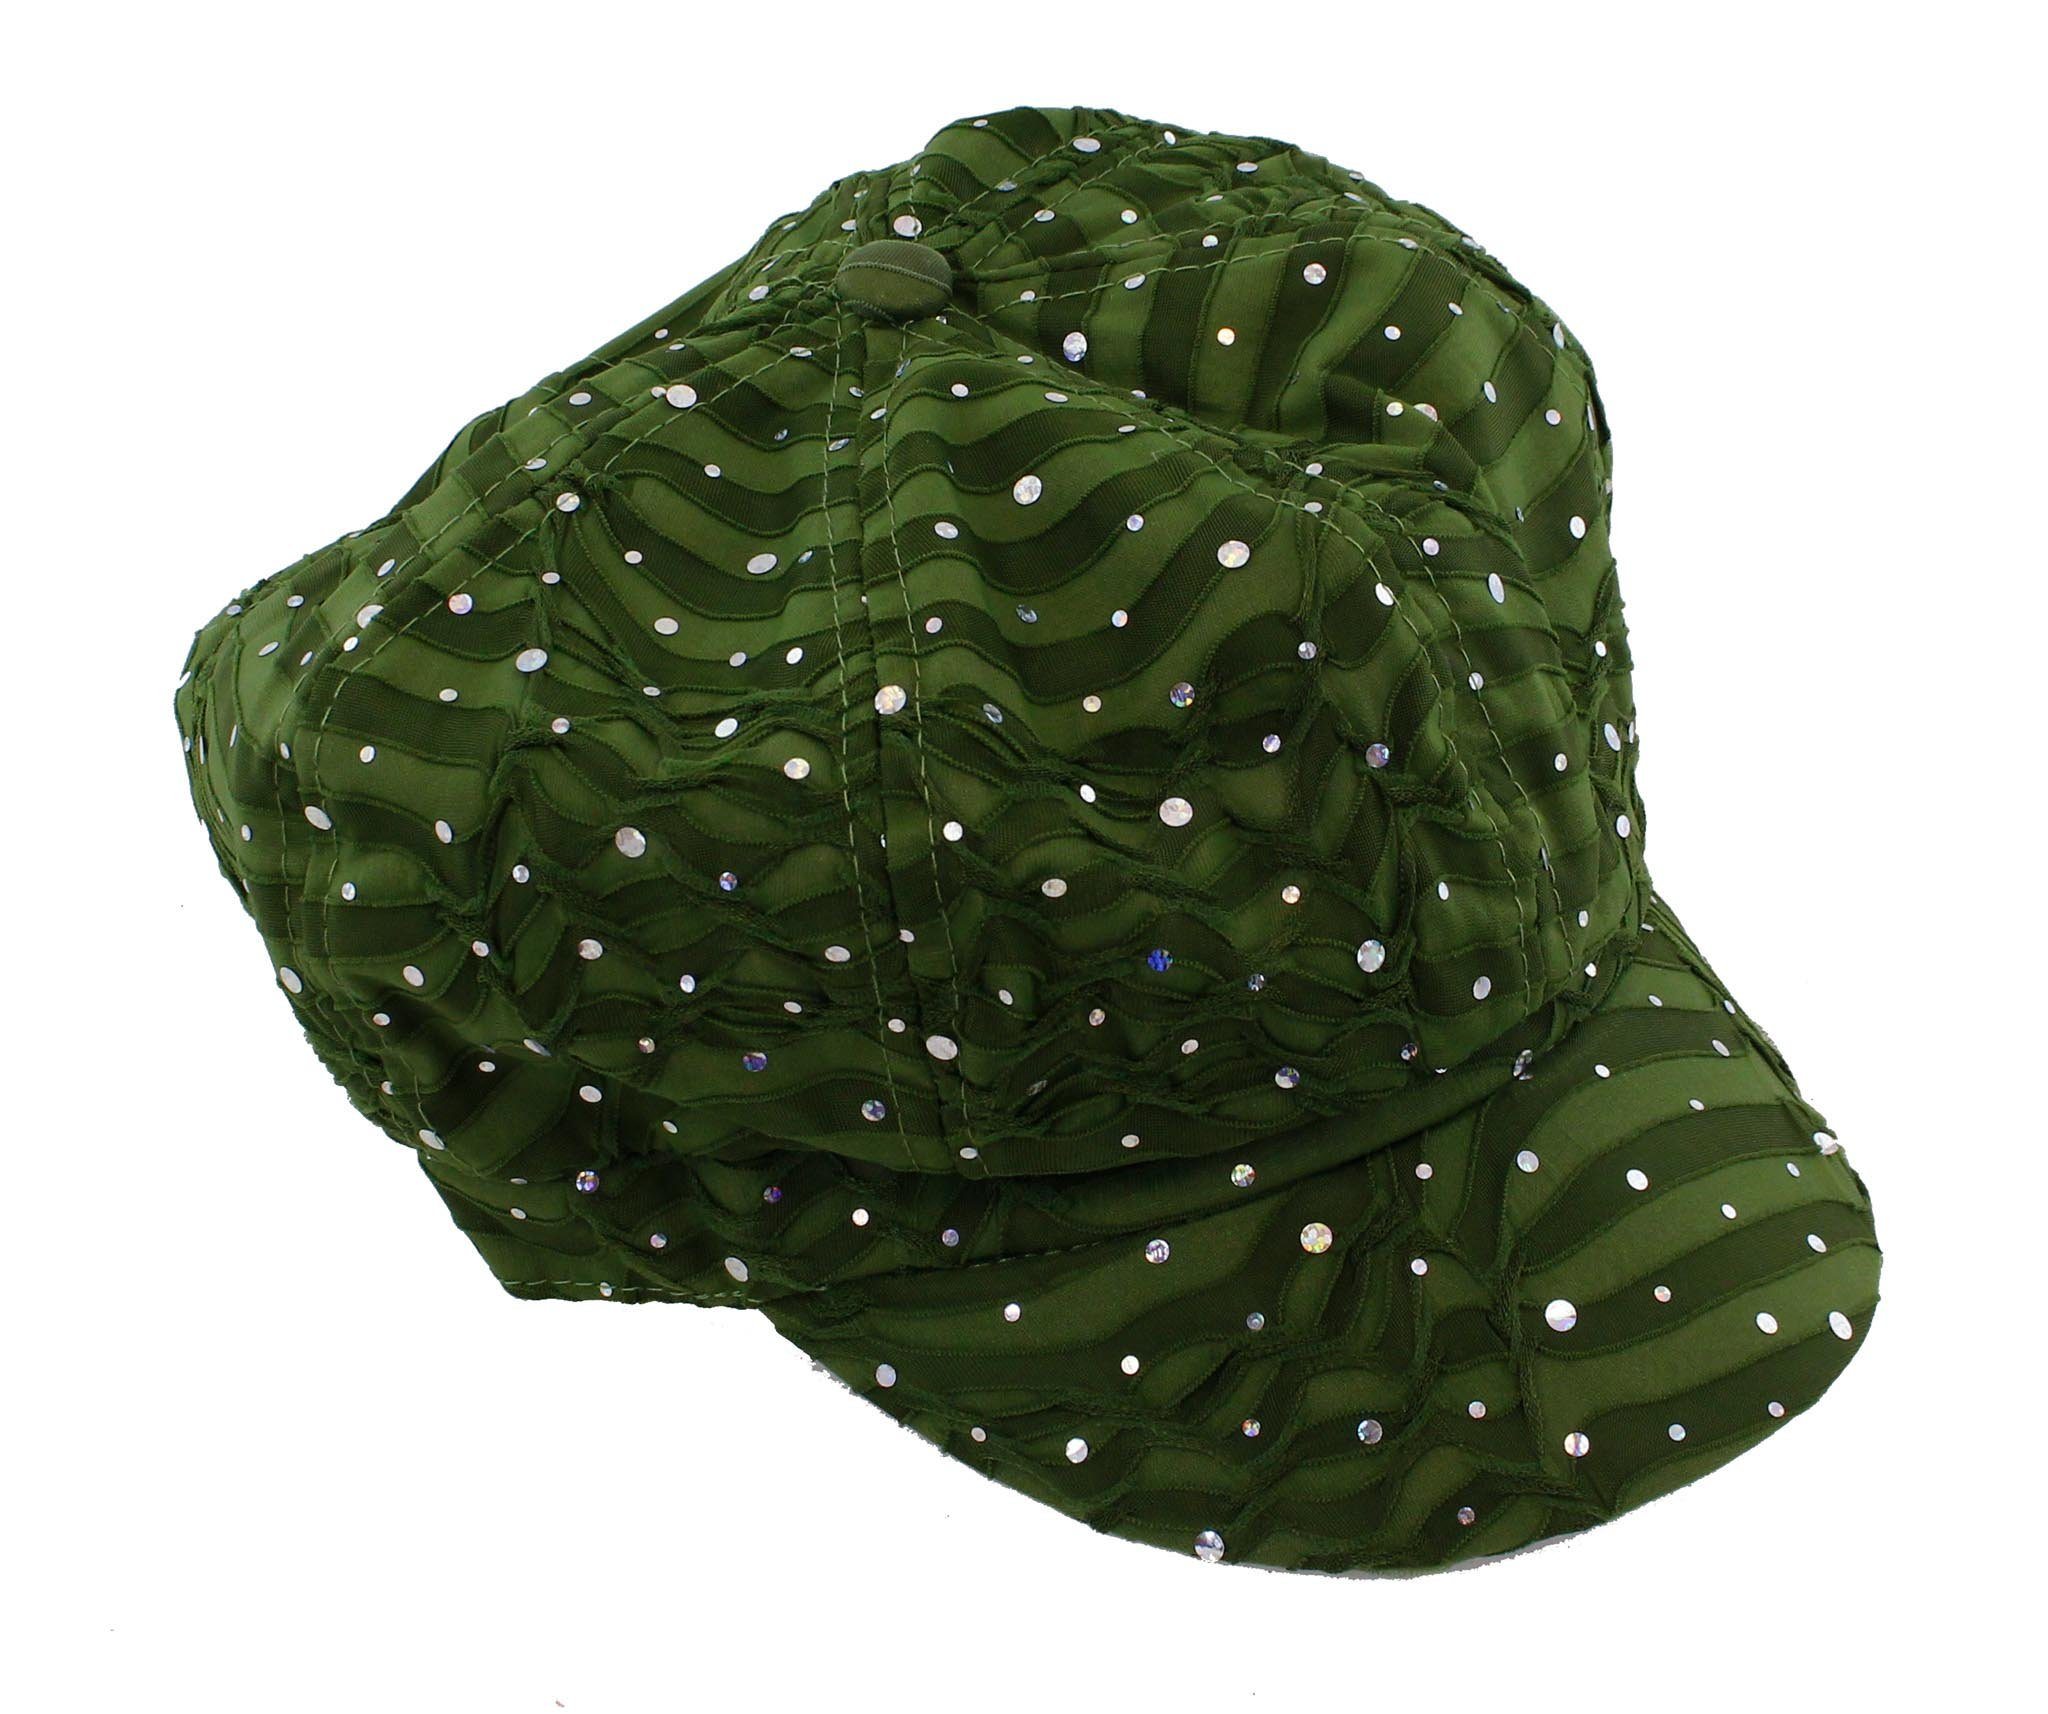 Glitter Sequin Trim Newsboy Style Relaxed Fit Cap, Olive Green by Greatlookz Fashion (Image #2)